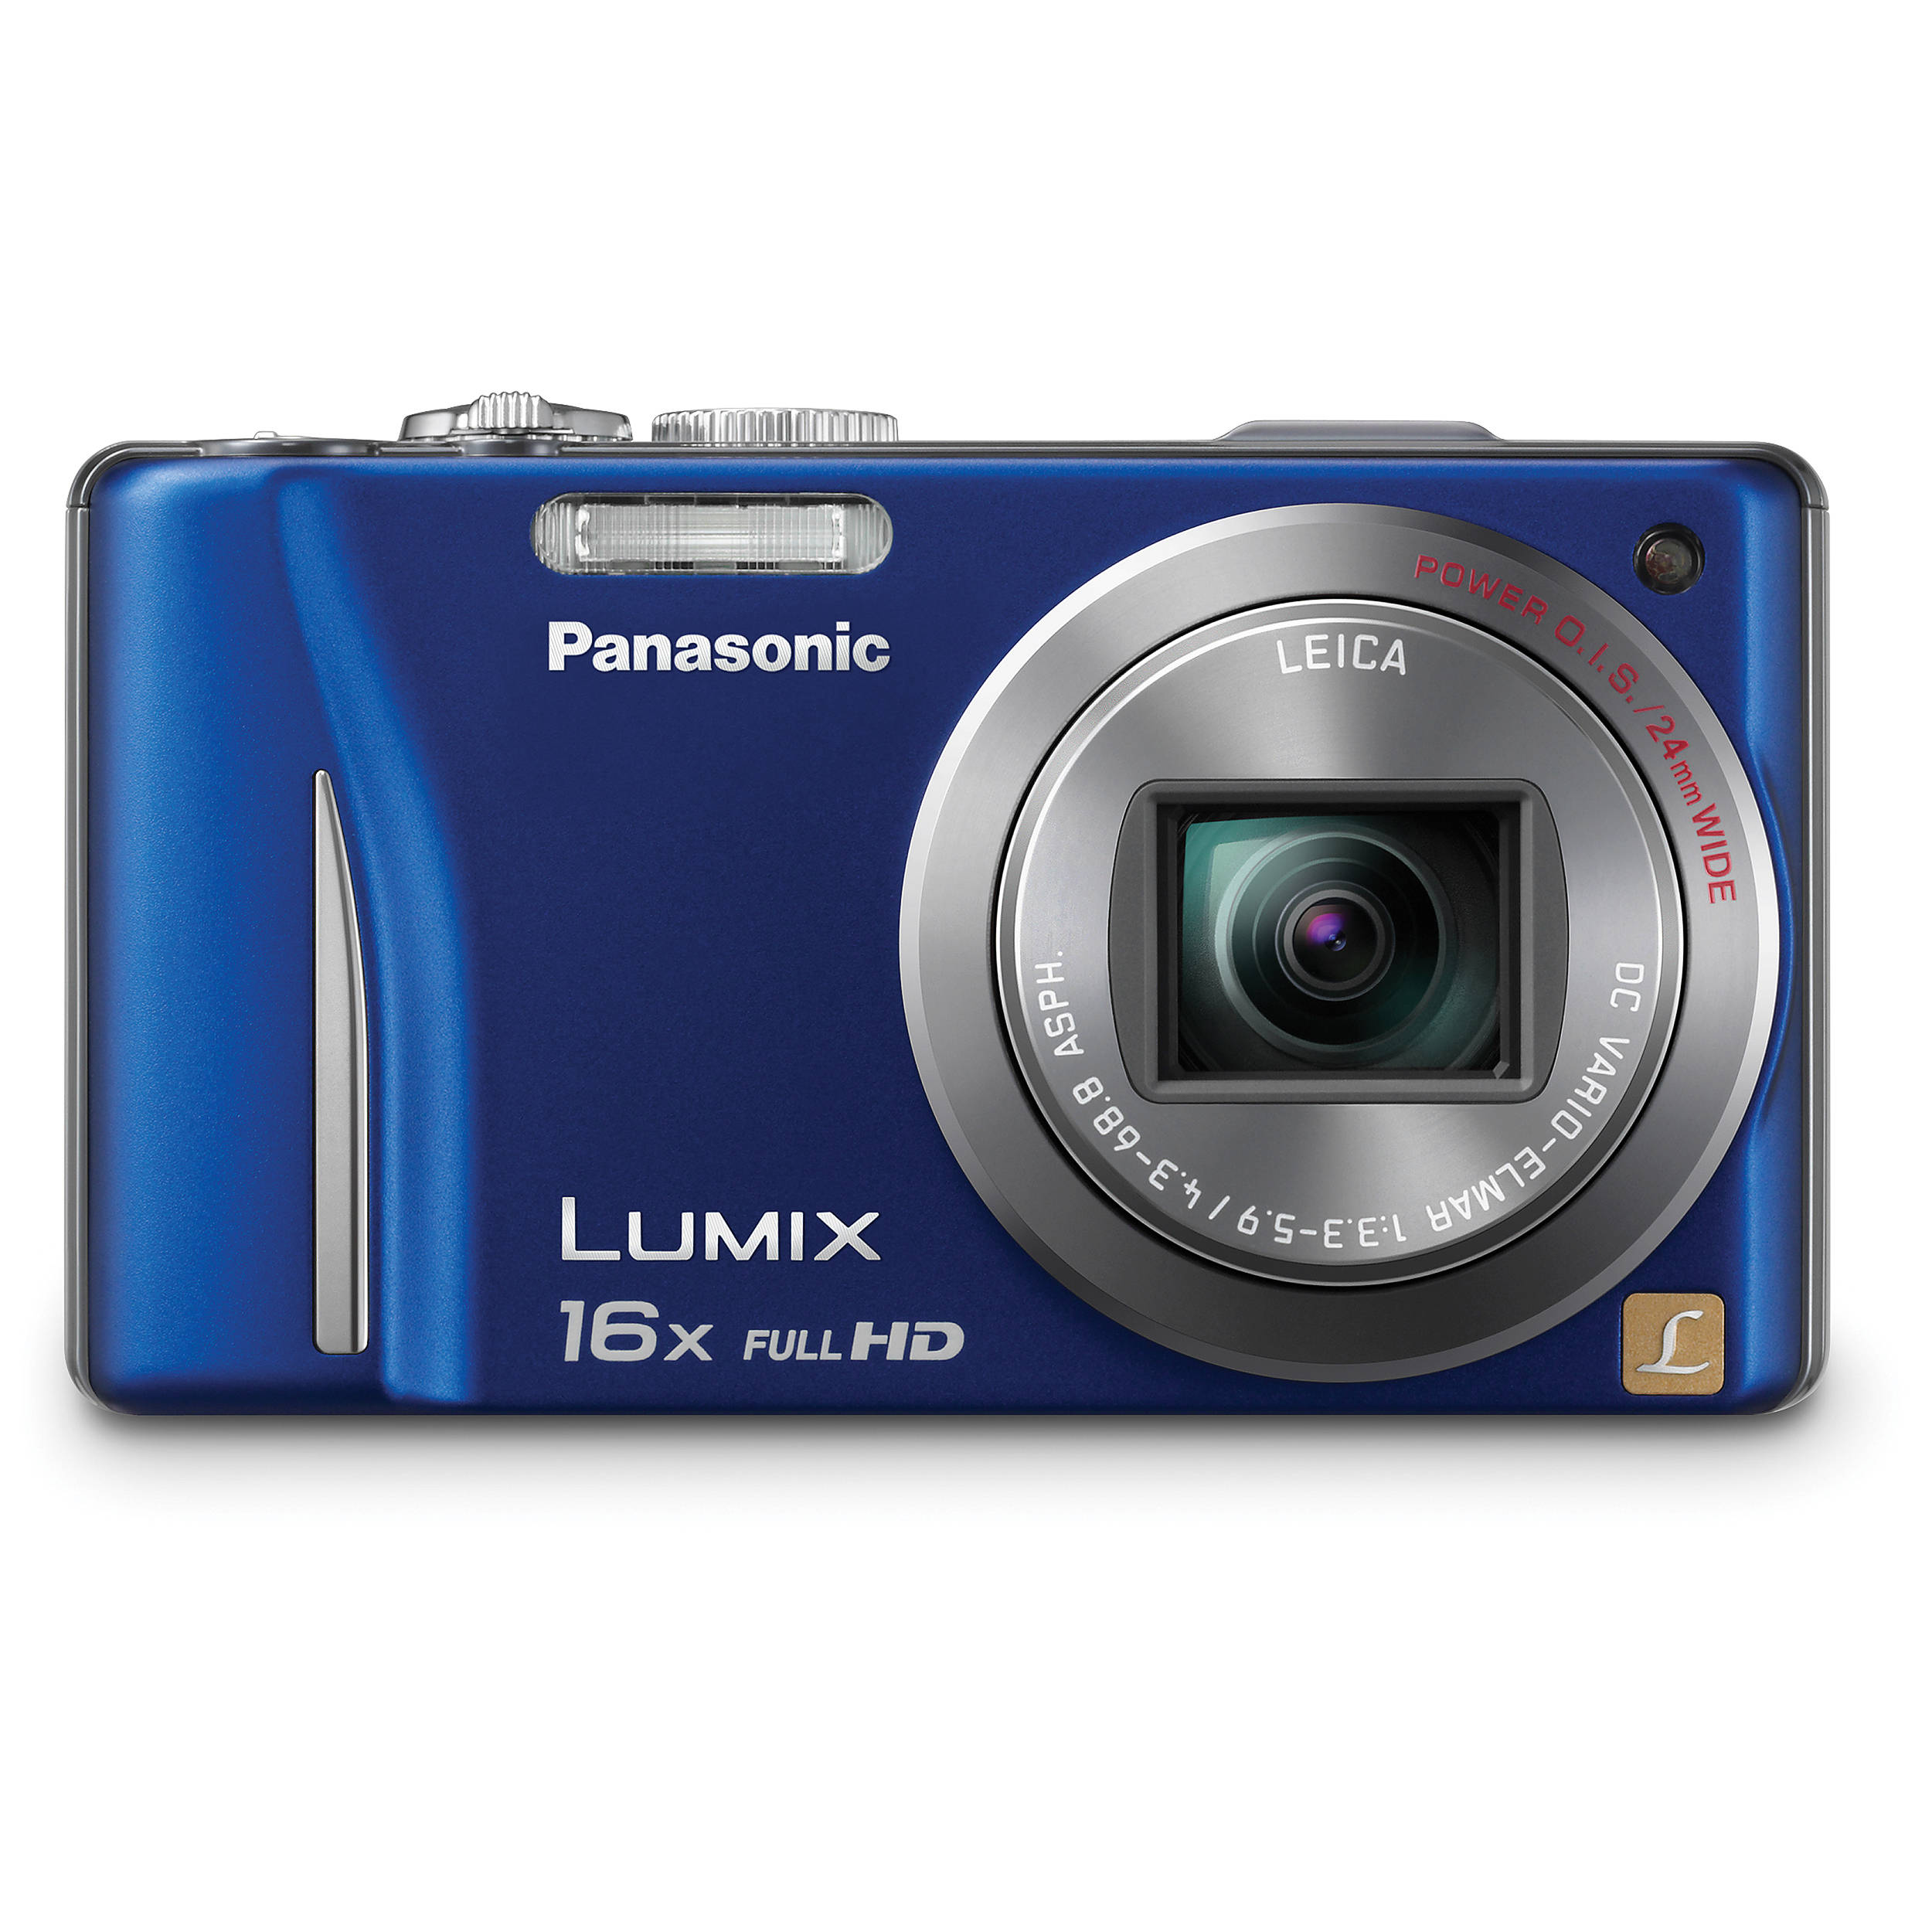 panasonic lumix dmc zs10 digital camera blue dmc zs10a b h rh bhphotovideo com panasonic lumix dmc zs10 manual español Panasonic Lumix 16X